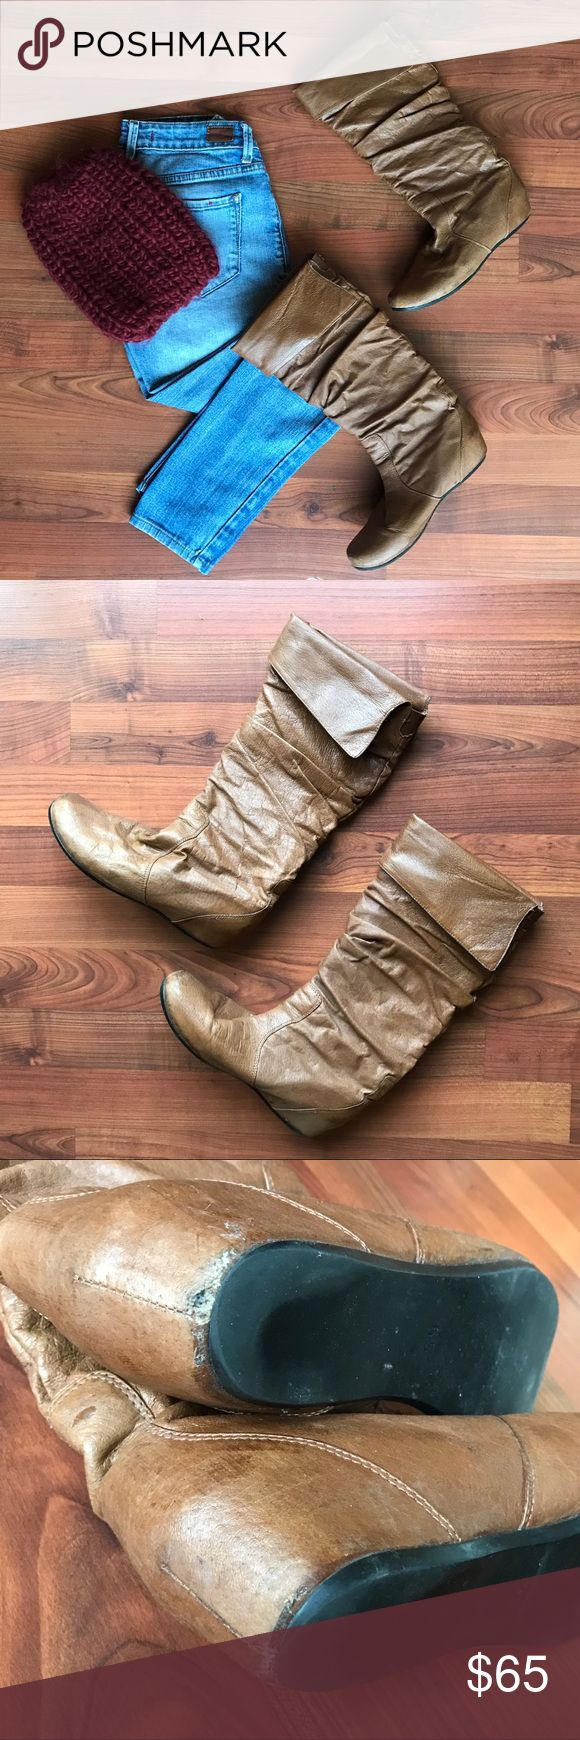 """Steve Madden Tan Boots - sz 6.5 Steve Madden Keen High Boots. 14"""" tall, tan/brown color, scrunched detail, size 6.5, golden cuff. Lightly worn, good condition. Perfect with your favorite skinny jeans, leggings or winter dress. Steve Madden Shoes Winter & Rain Boots"""